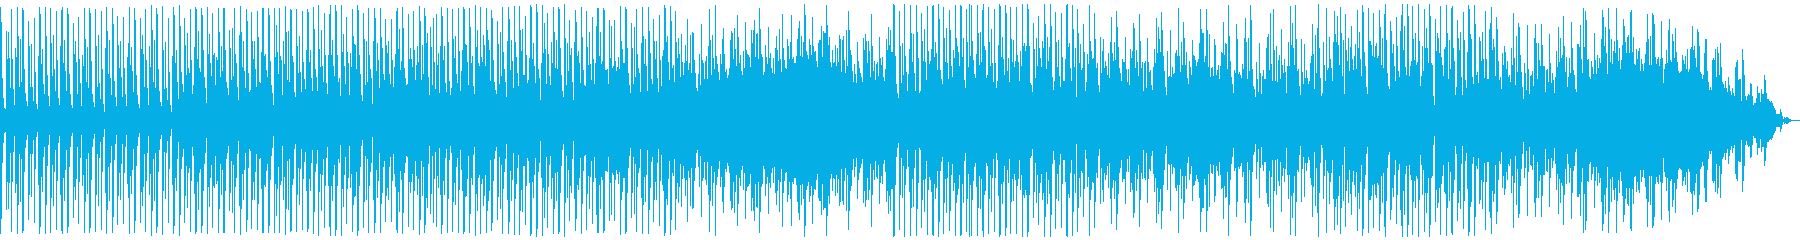 For news, traffic information, information video radio, etc.'s reproduced waveform